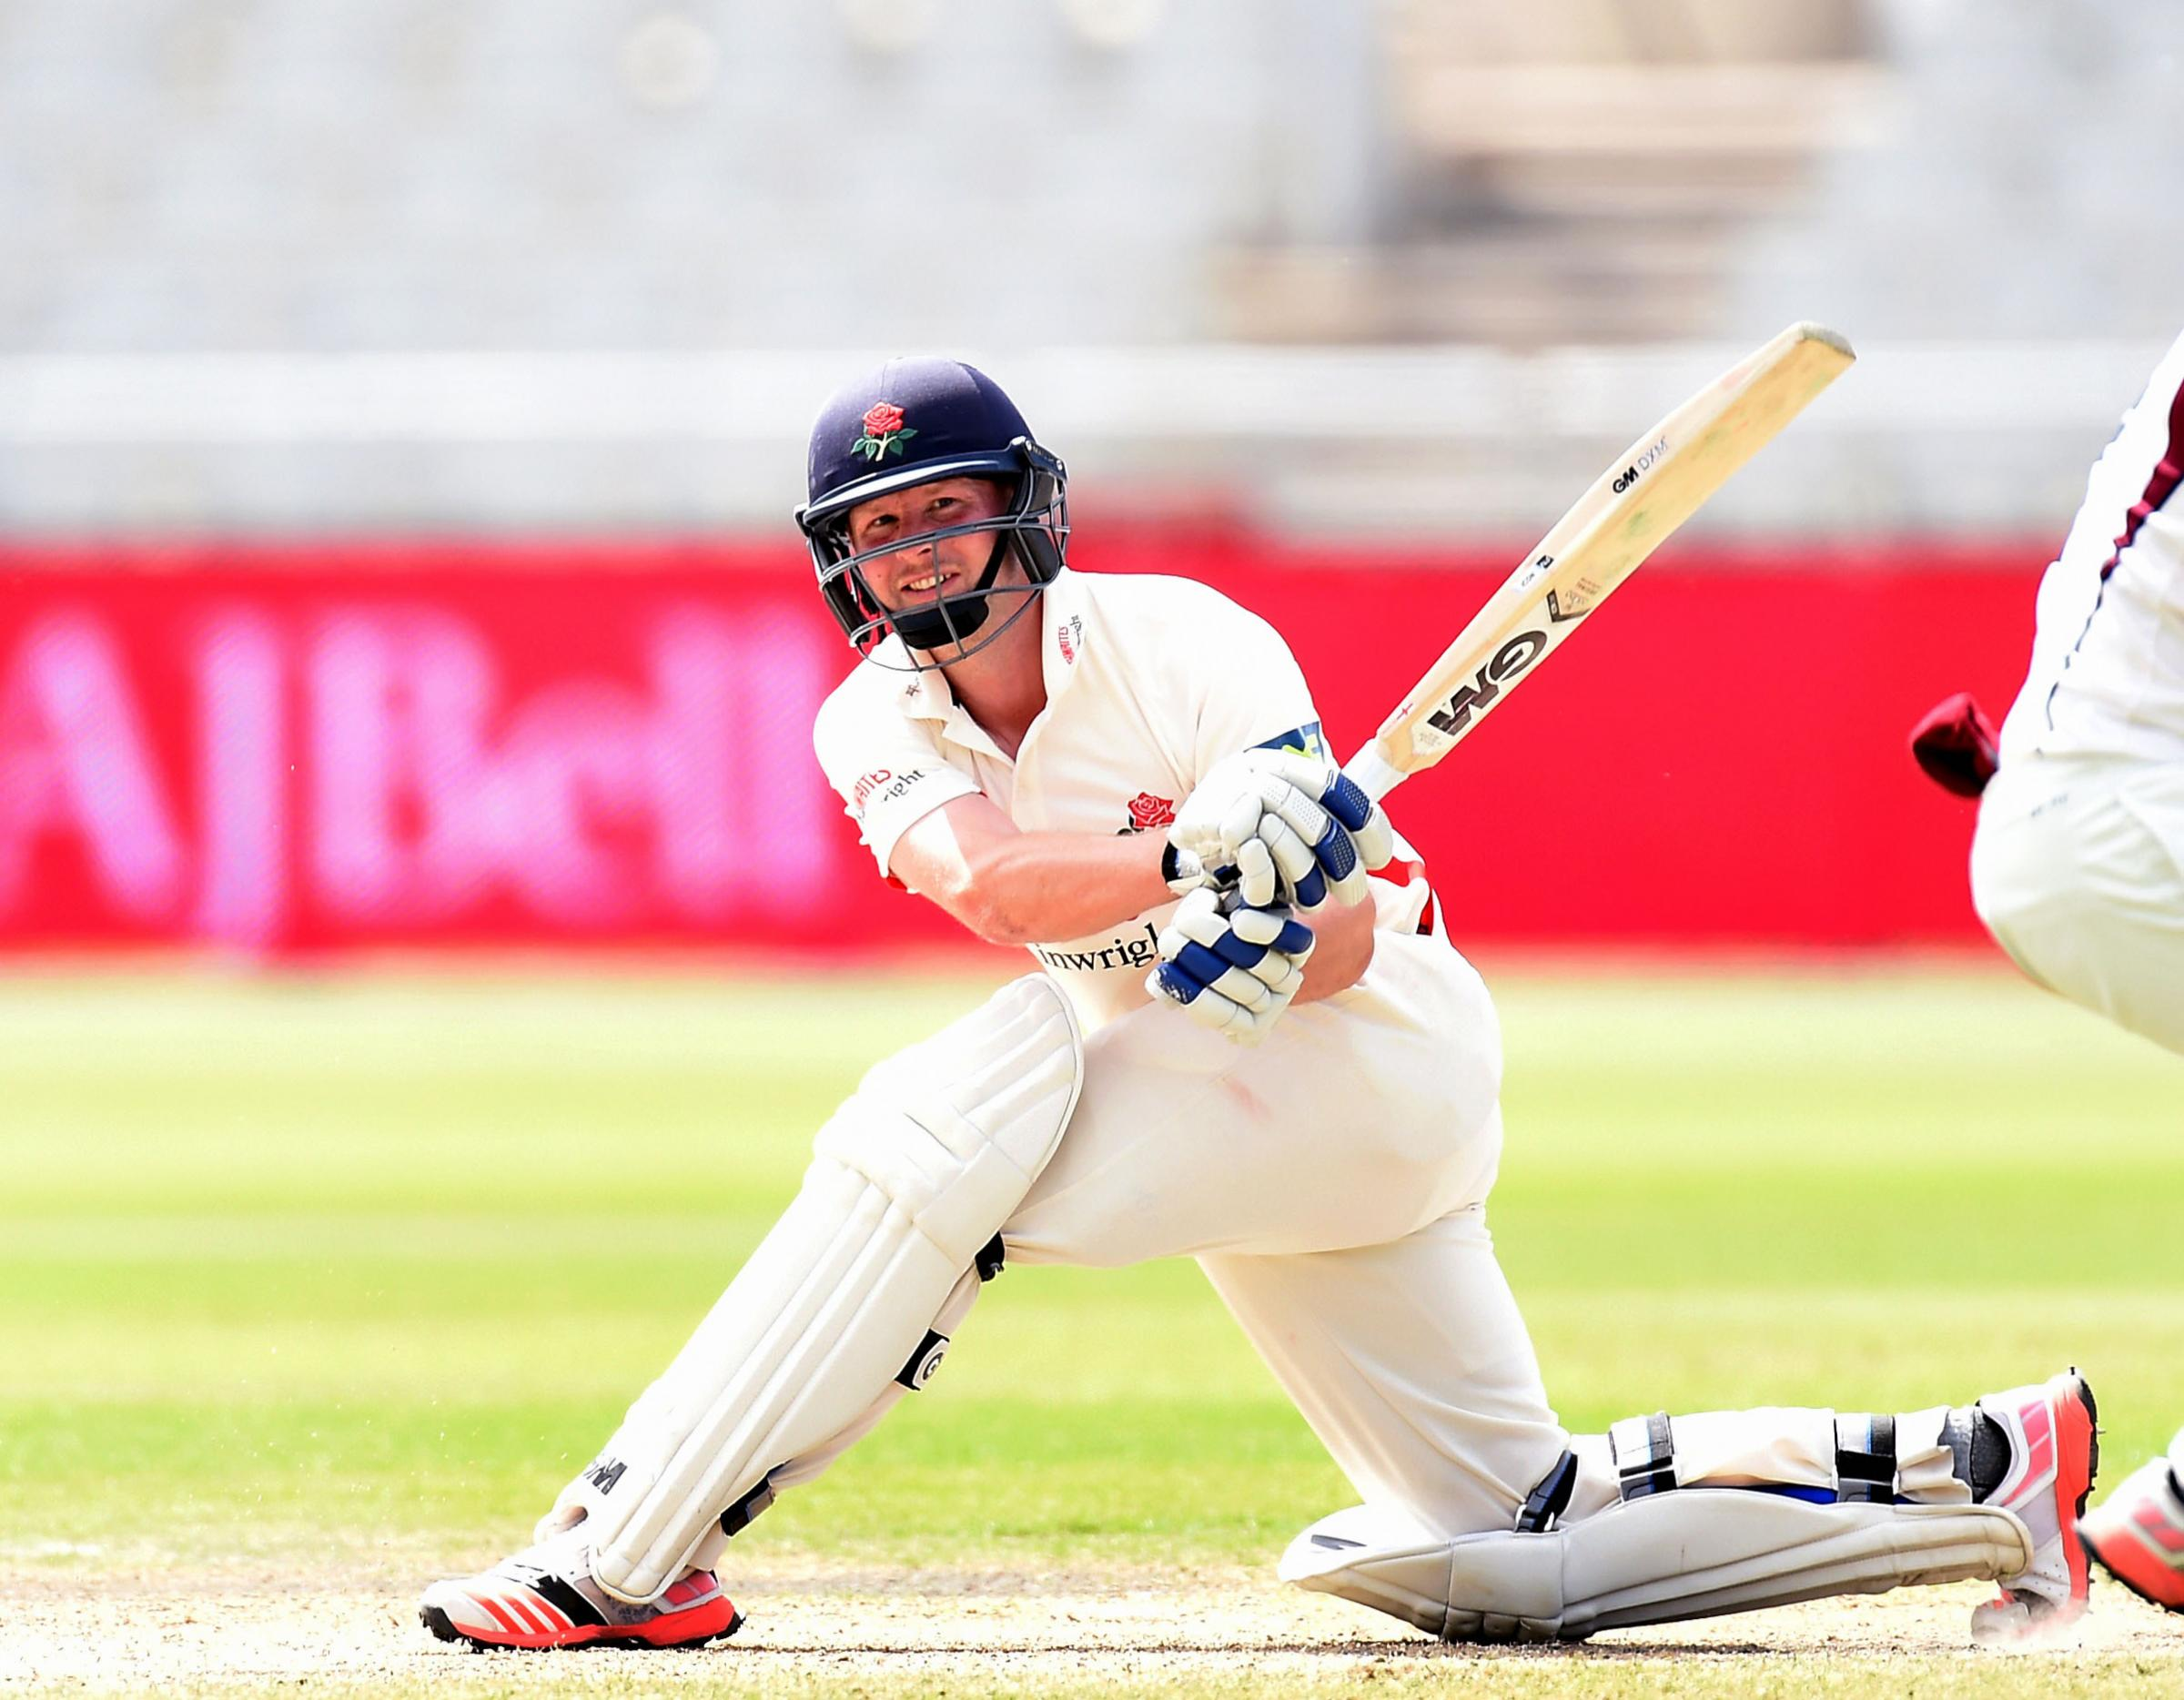 Lancashire's Karl Brown hits for 4 against Northamptonshire during the LVCC match at Old Trafford Cricket Ground, Manchester..